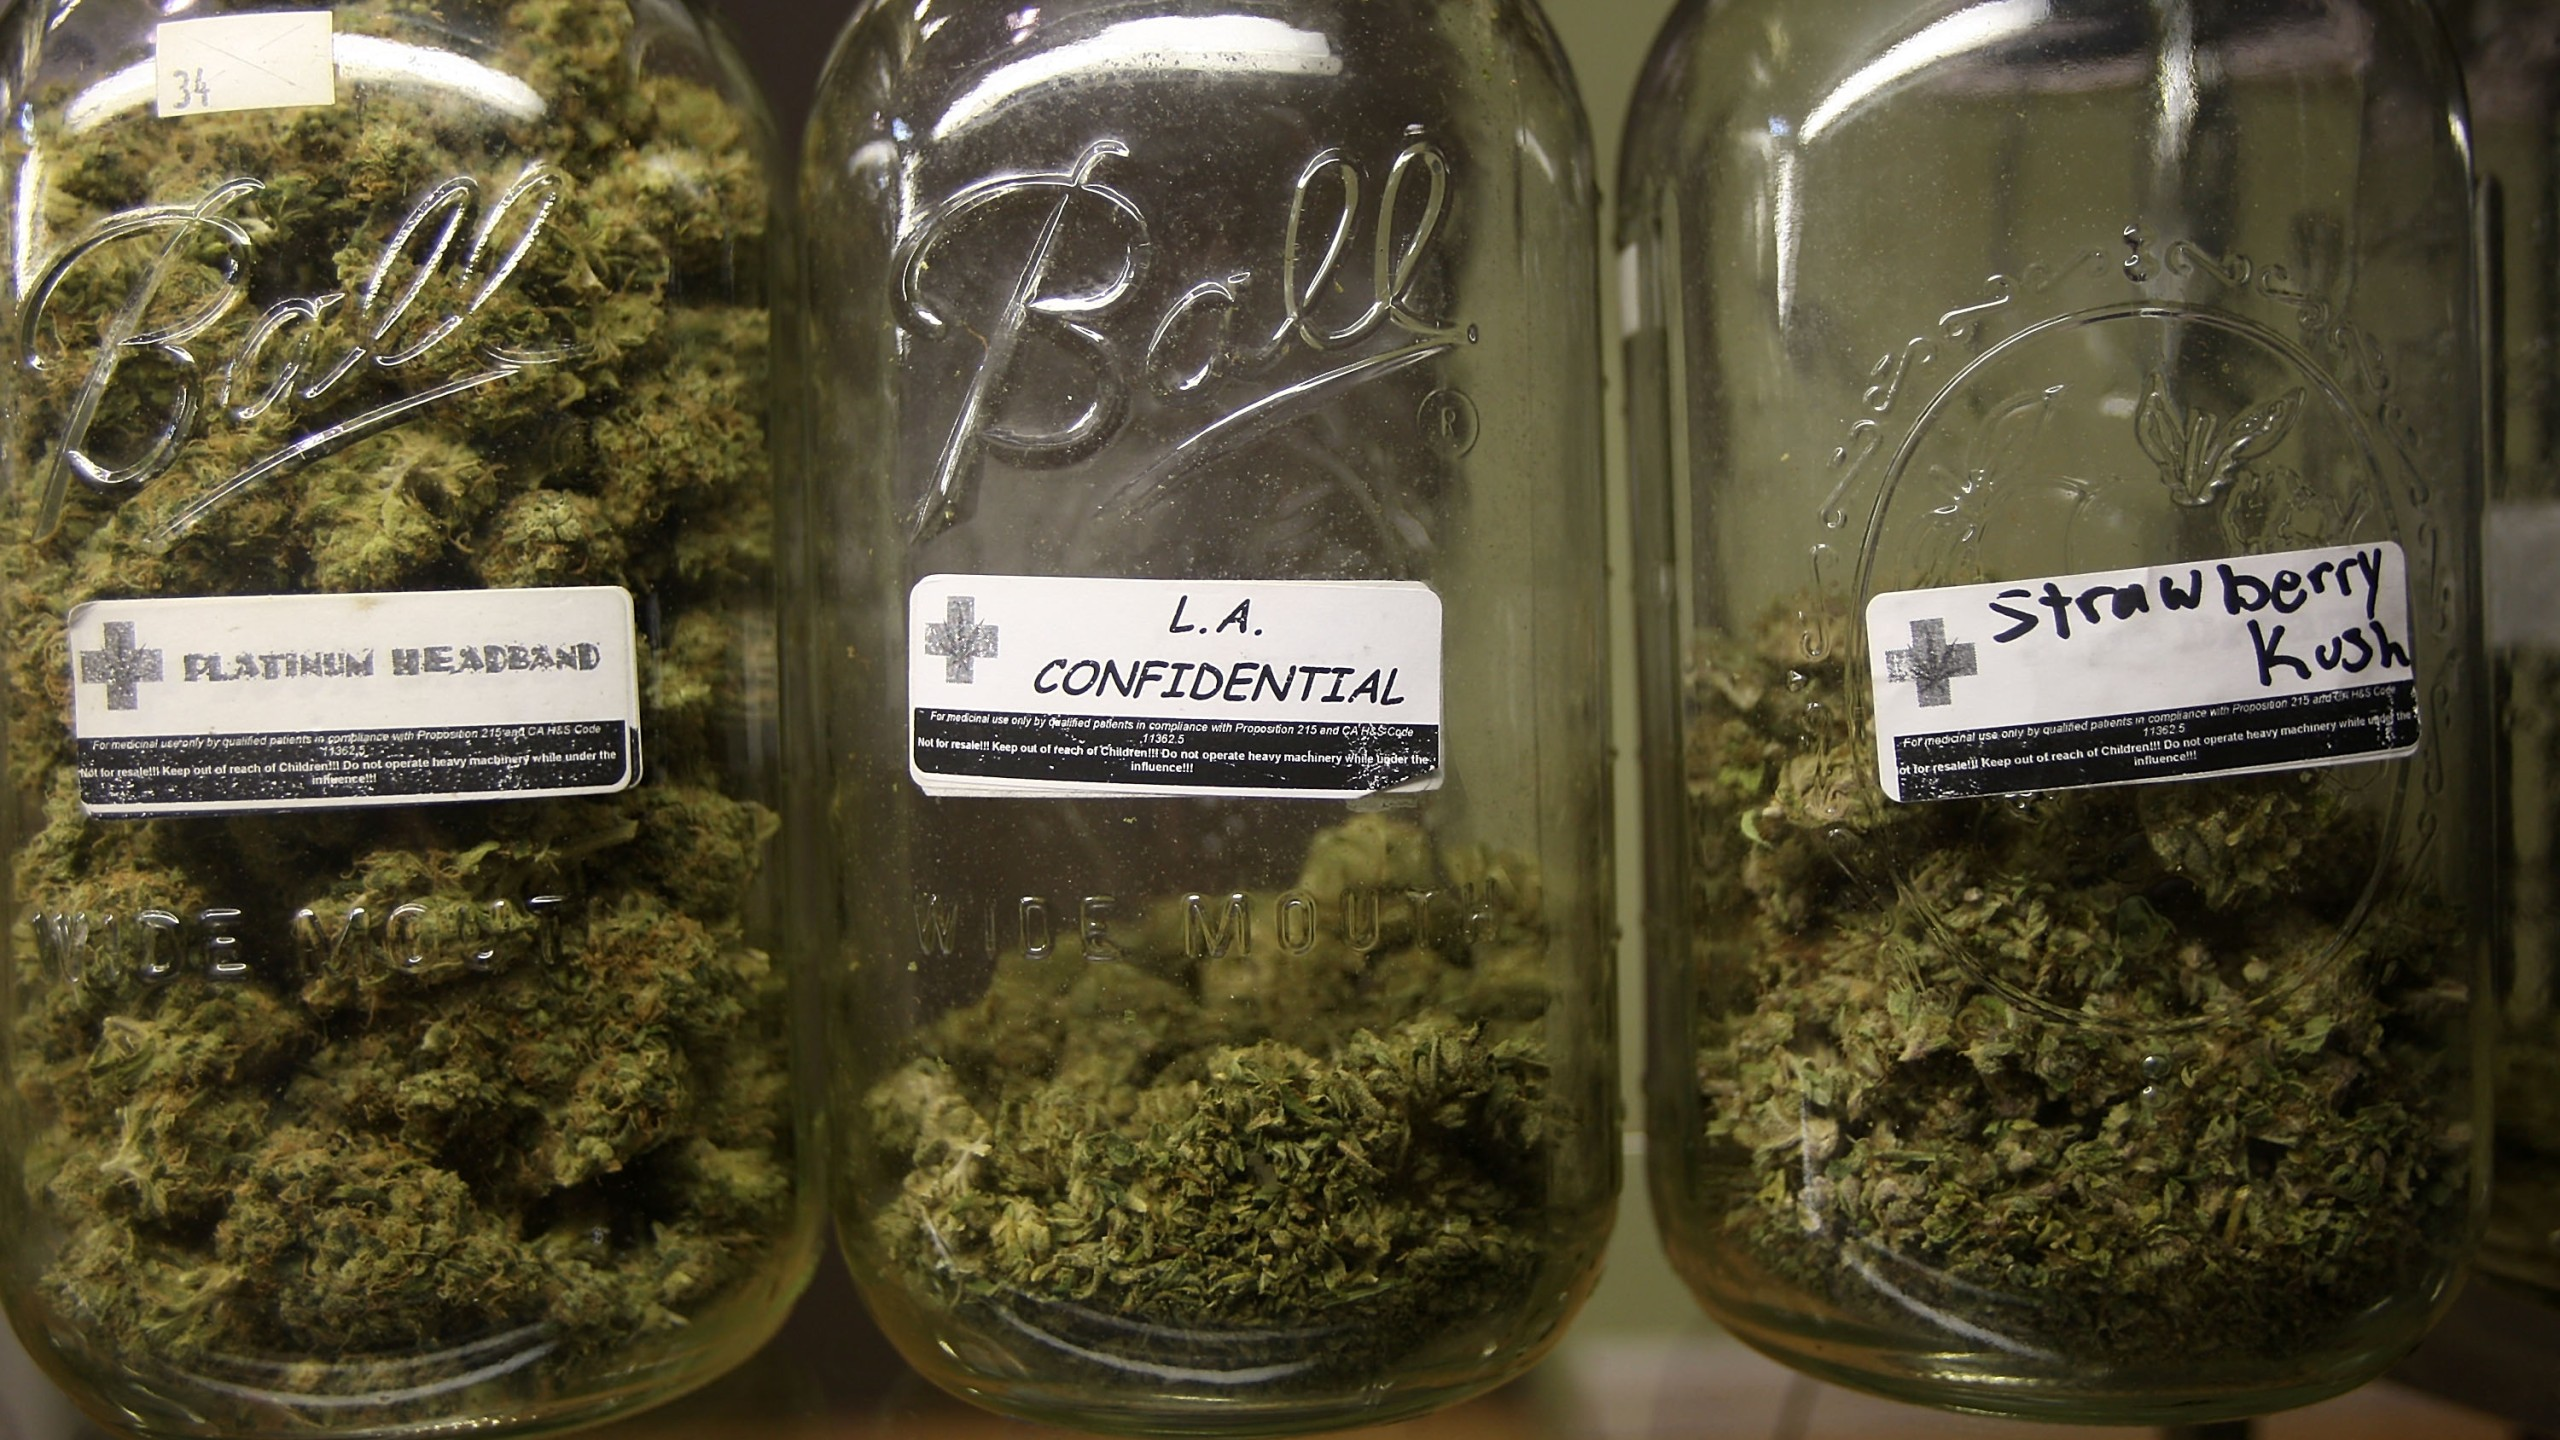 Platinum Headband, L.A. Confidential and Strawberry Kush are among several types of marijuana on display at a medical marijuana dispensary in Los Angeles on Oct. 19, 2009. (Credit: David McNew / Getty Images)